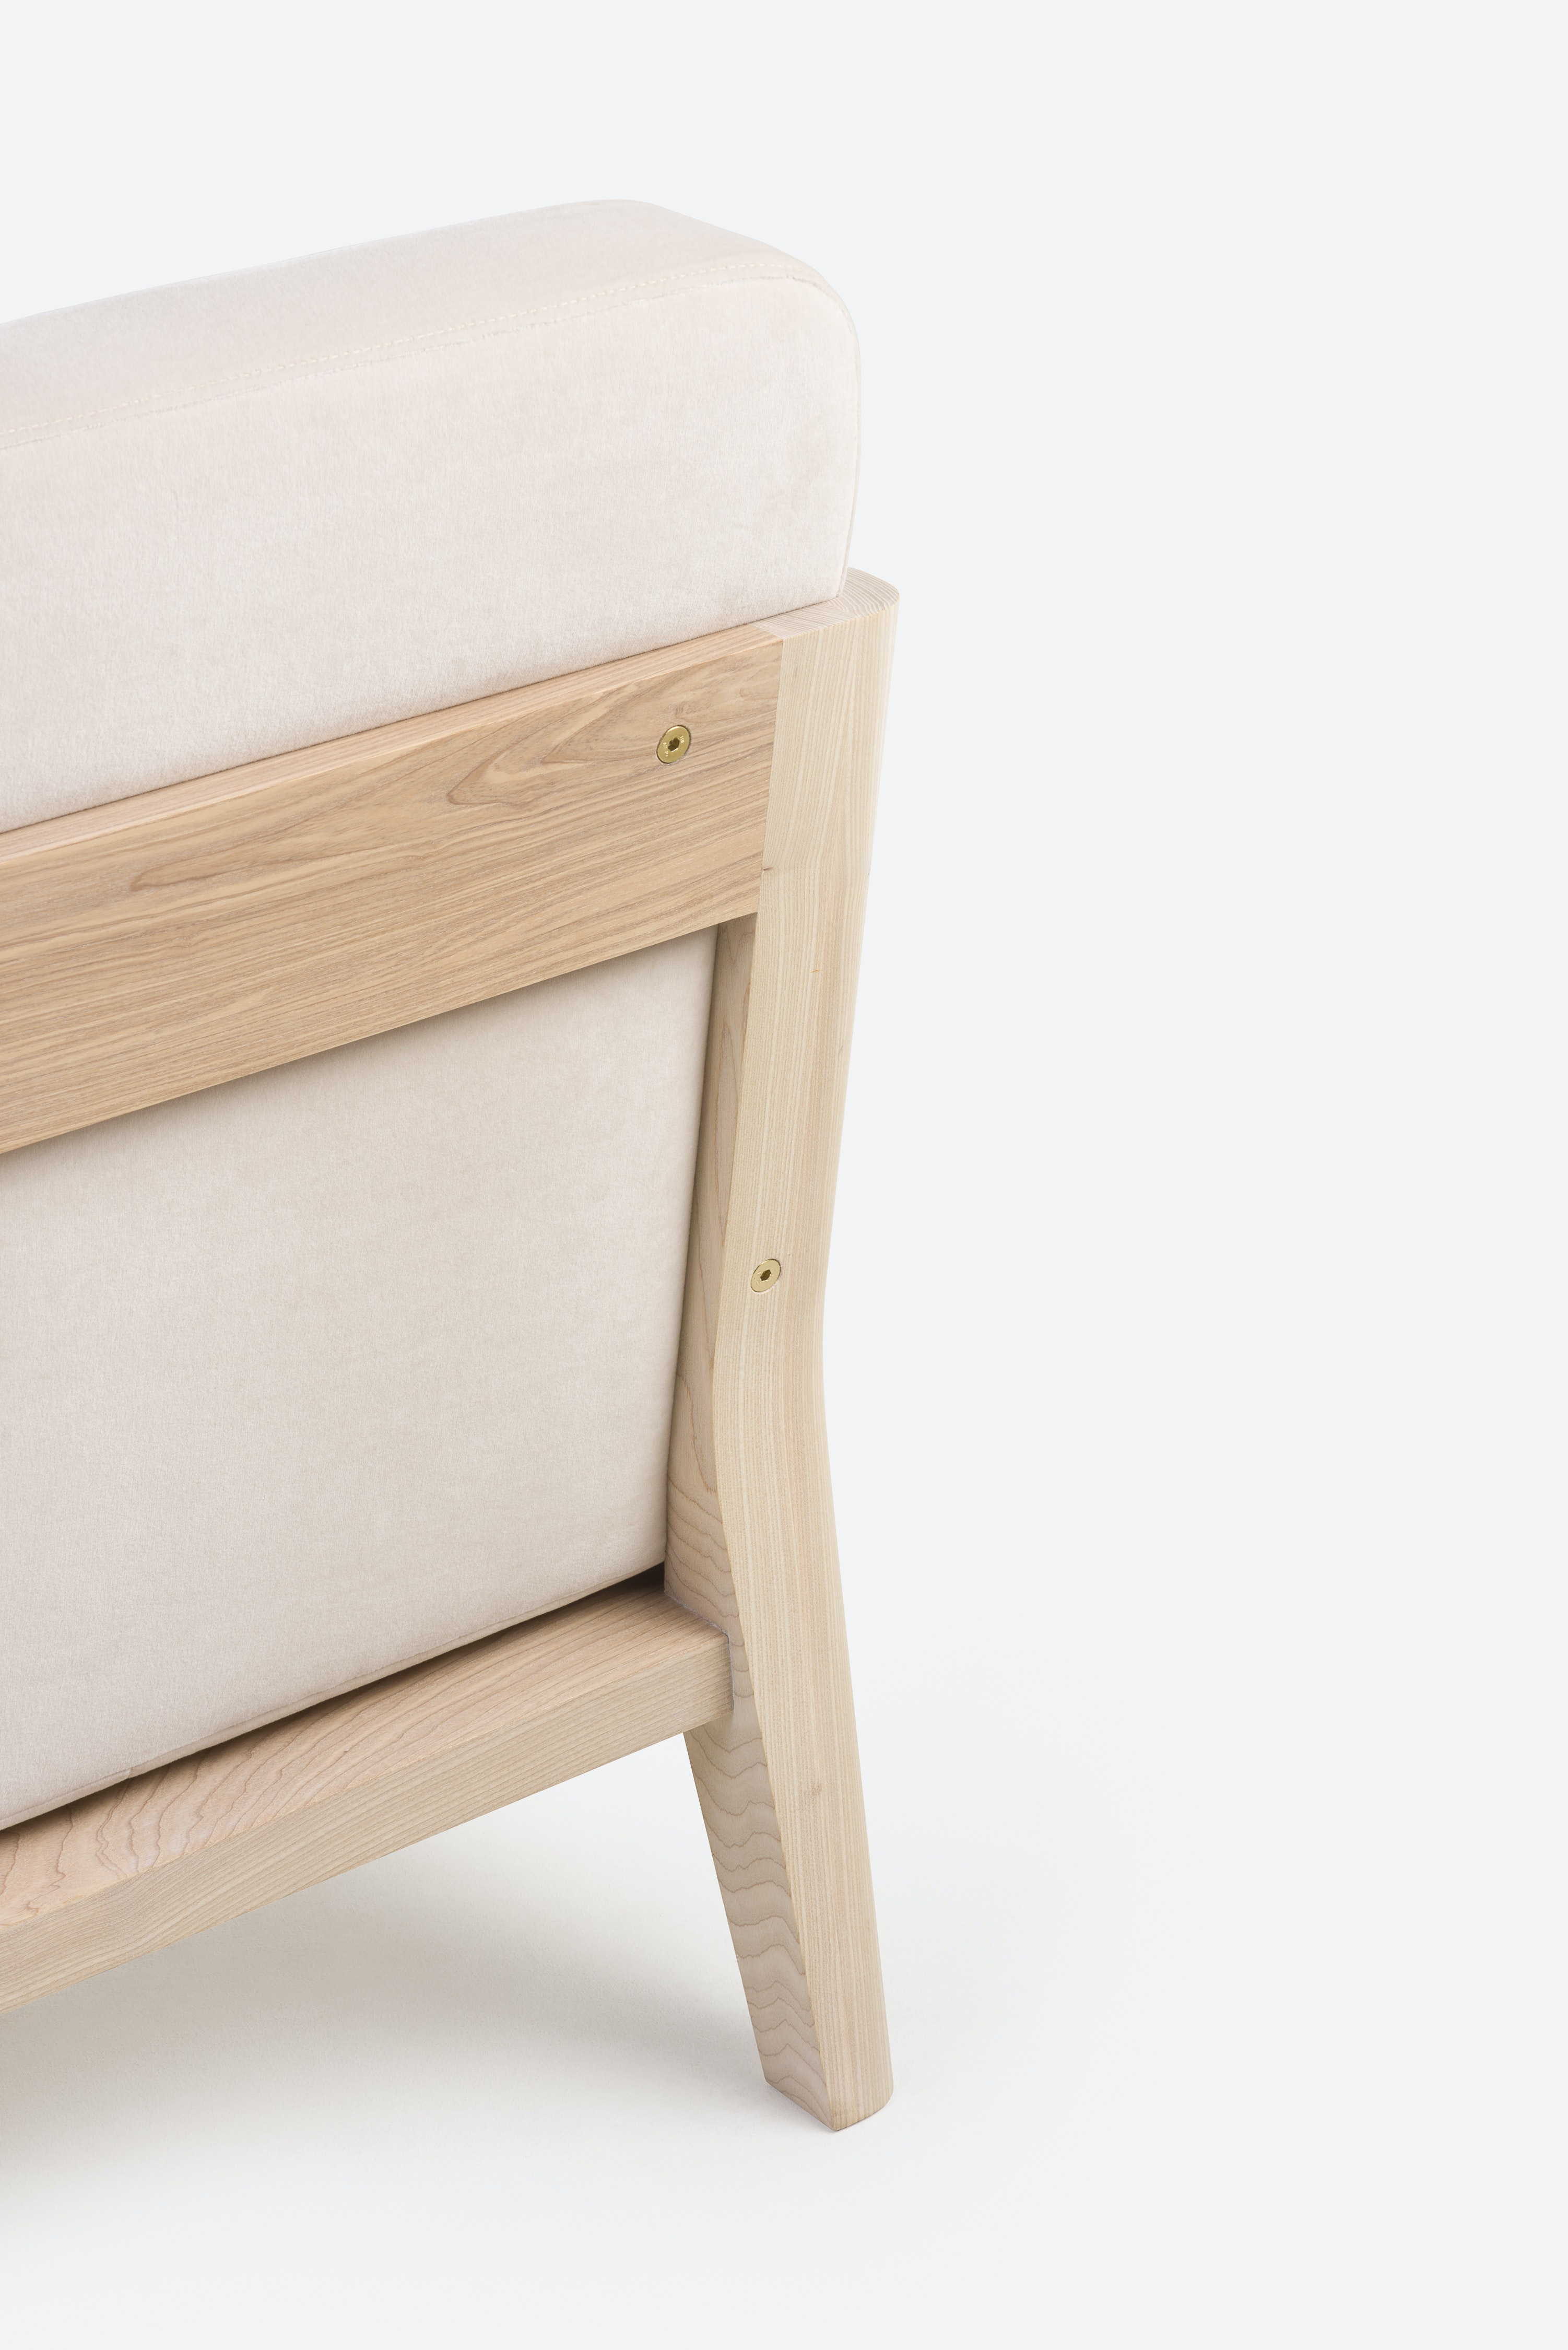 Capo Bed By Neri Hu Detail2